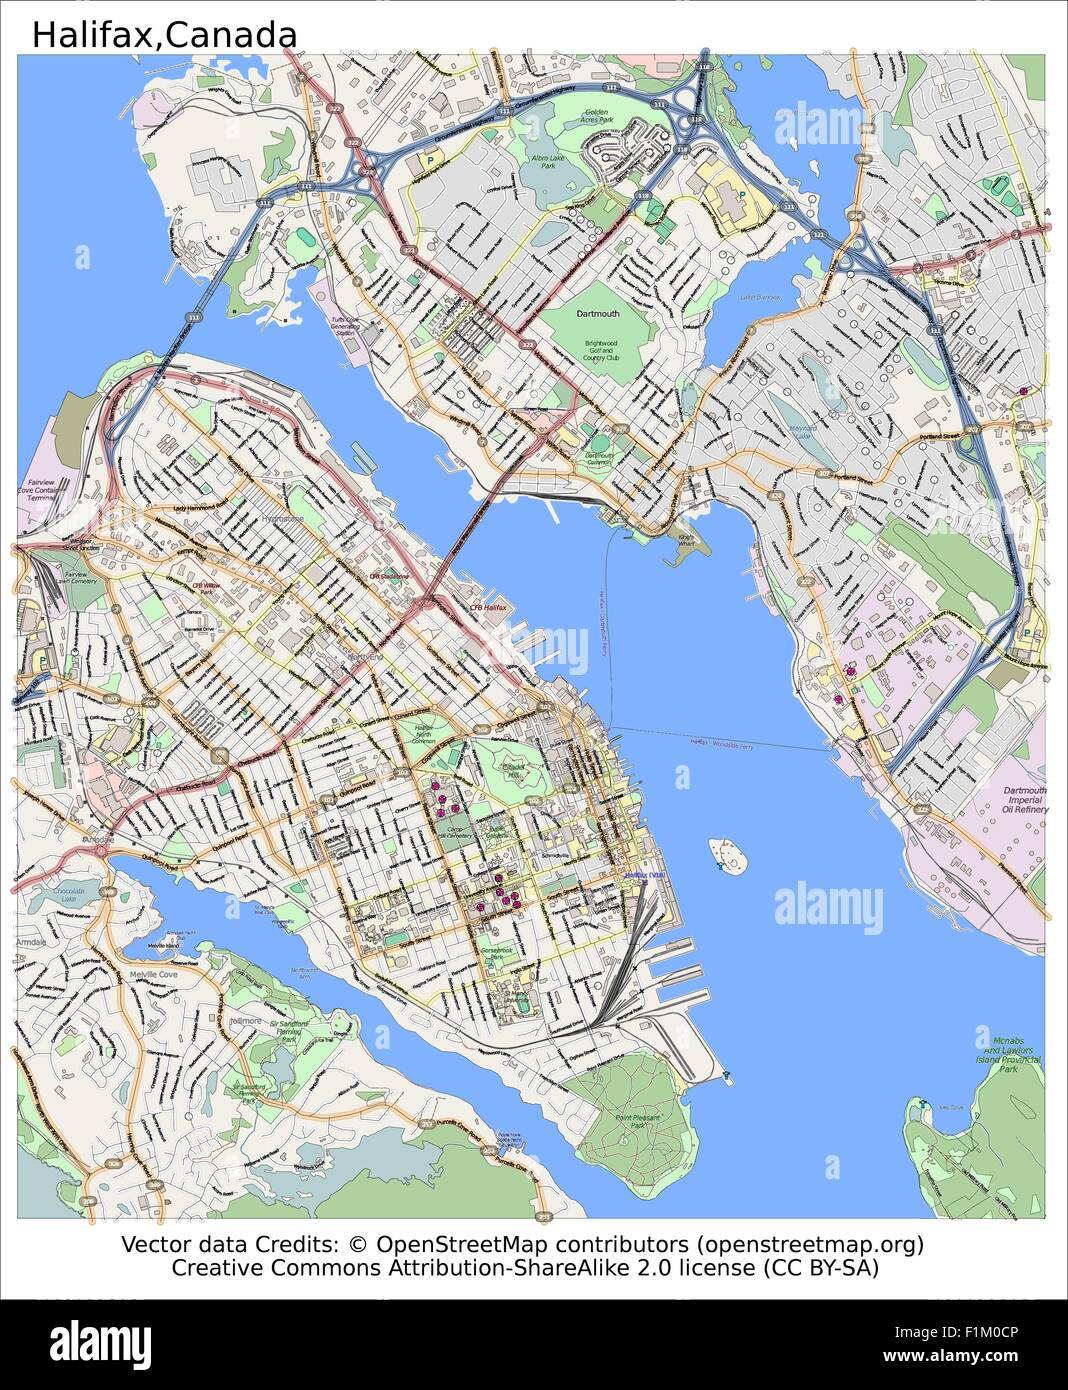 Halifax Canada map aerial view Stock Vector Art Illustration